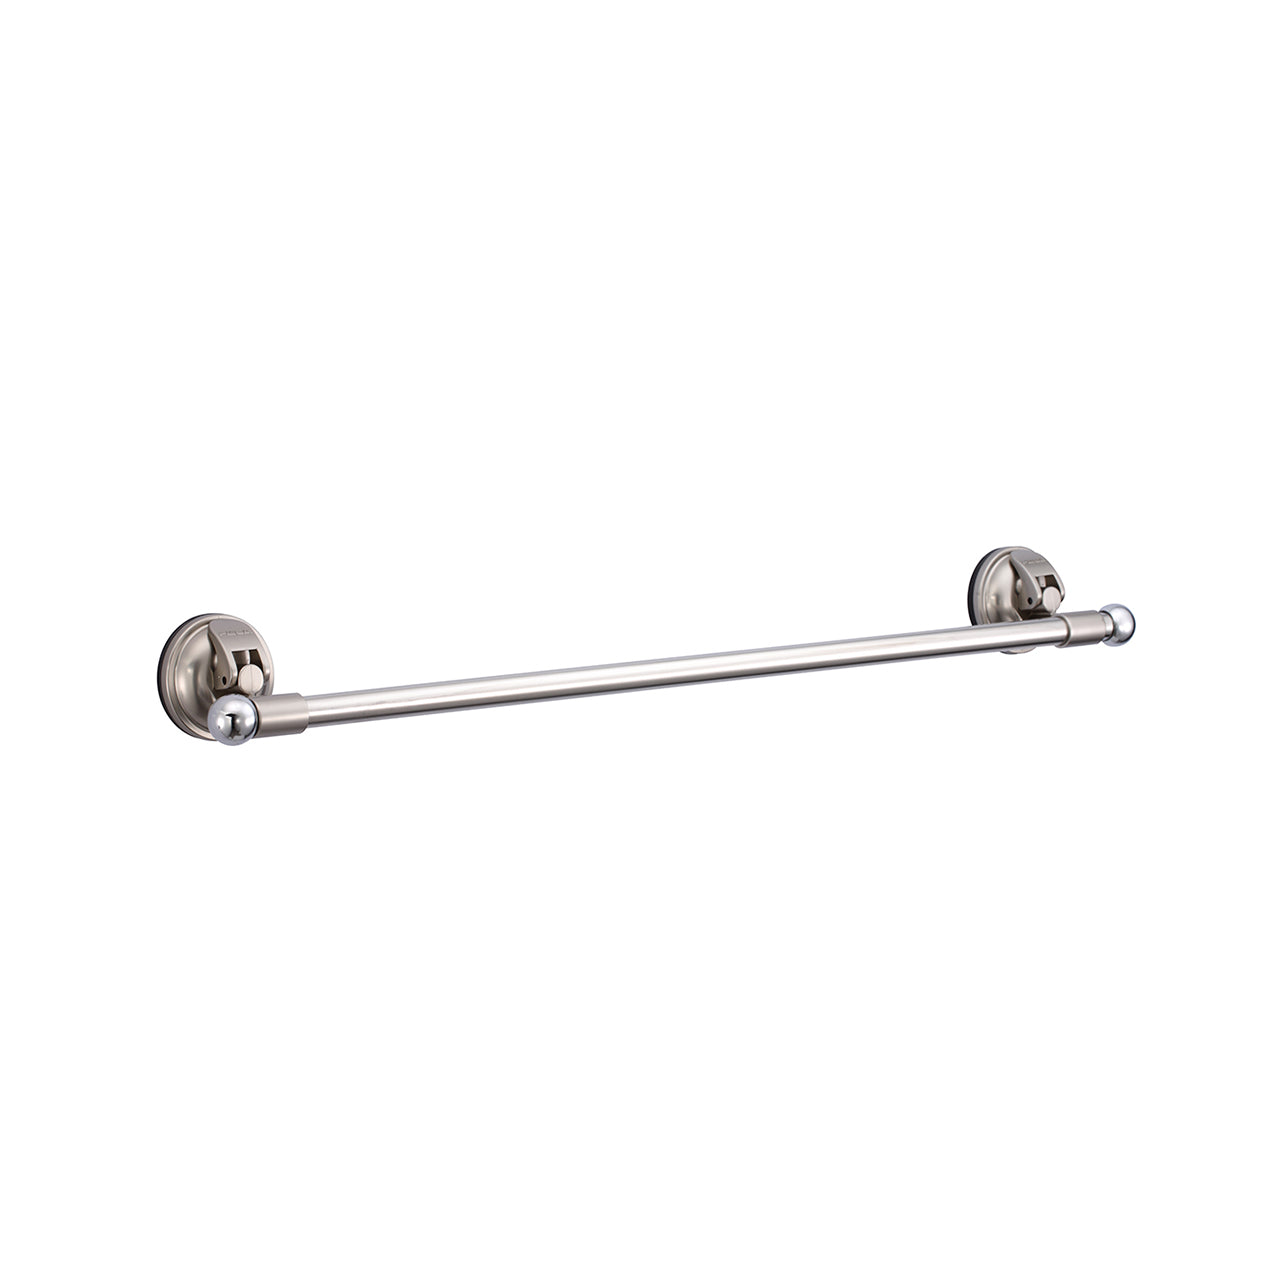 E11 EARL KNIGHT 60CM TOWEL HOLDER SET-  MATTE NICKEL